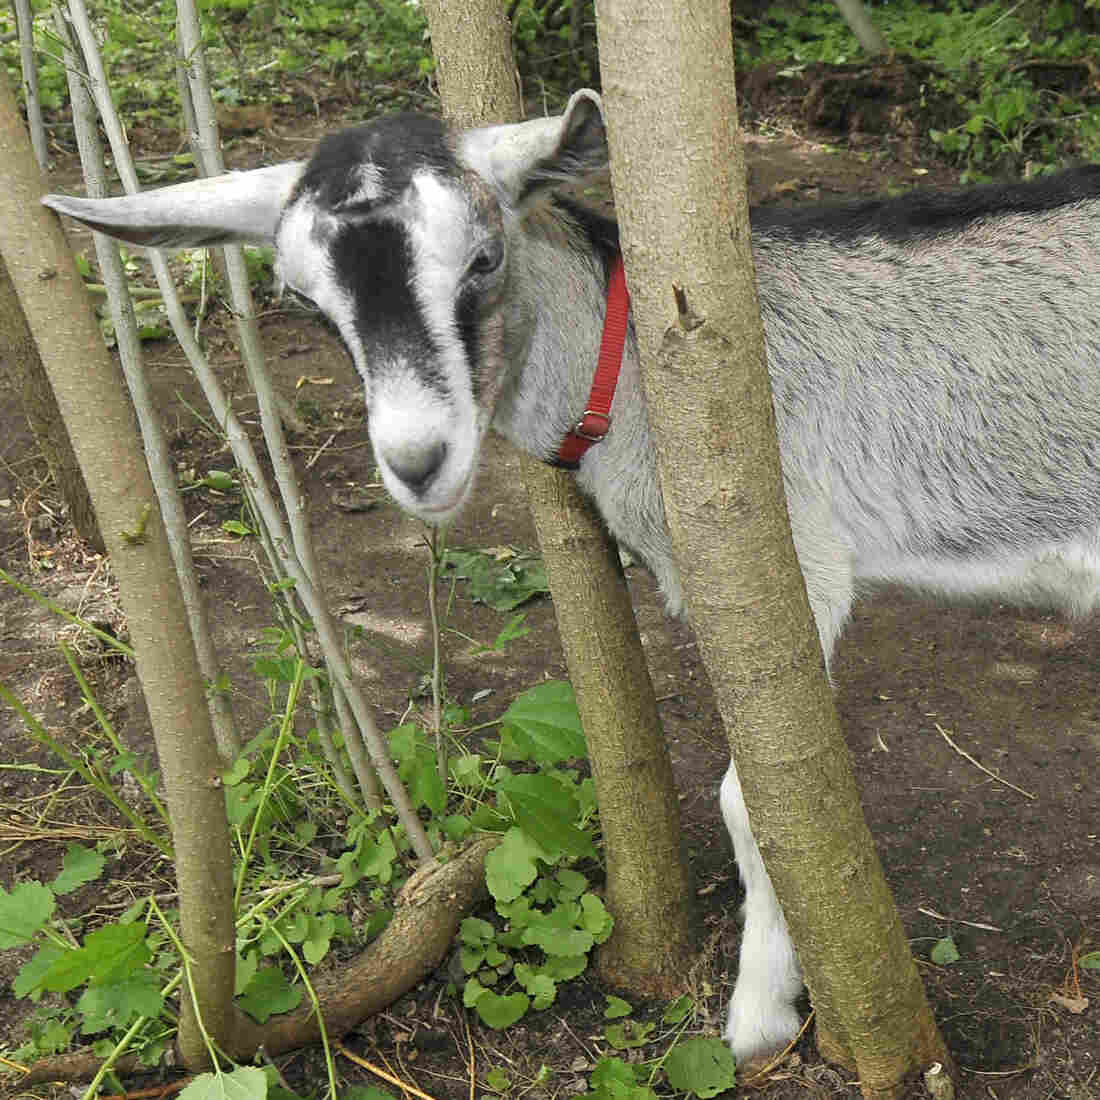 Goats In The City? Making A Case For Detroit's Munching Mowers